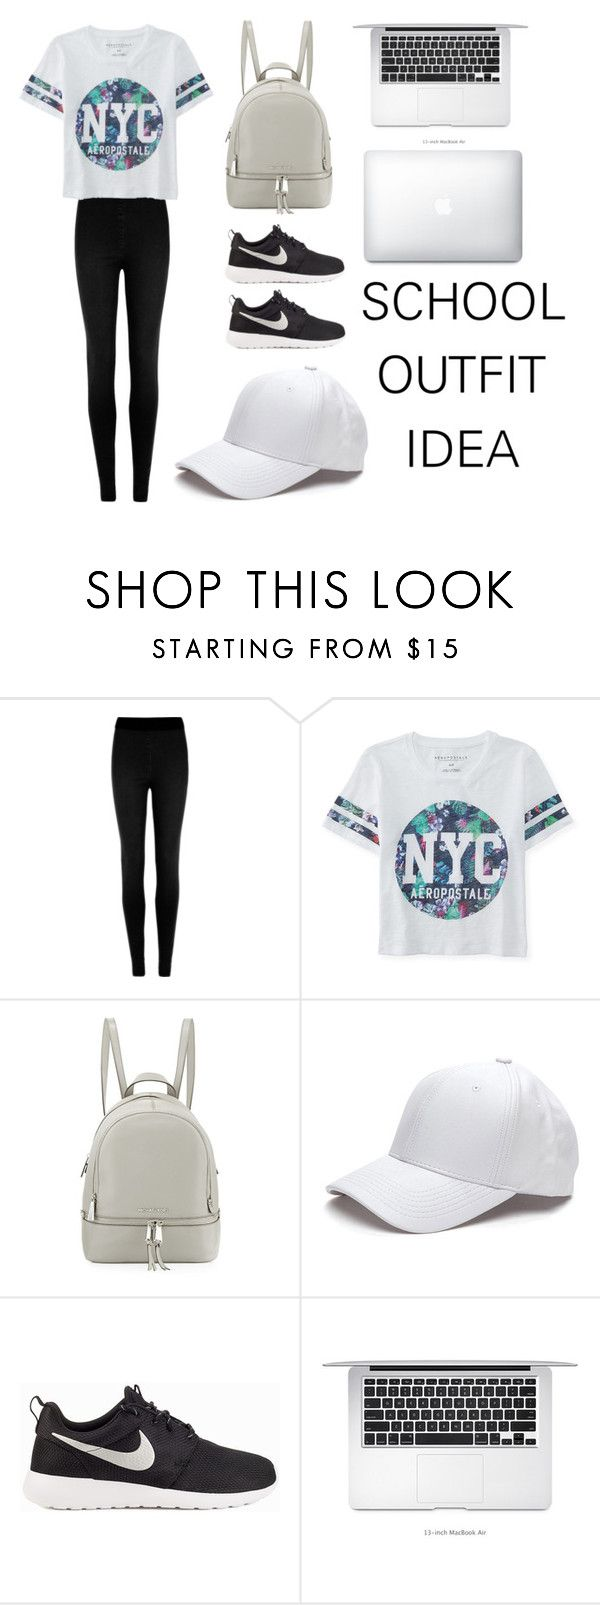 """""""Back To School Outfit #6"""" by gabrielleluy ❤ liked on Polyvore featuring M&S Collection, Aéropostale, MICHAEL Michael Kors, NIKE, school, sporty, girl, Minimaliststyle and fashionset"""